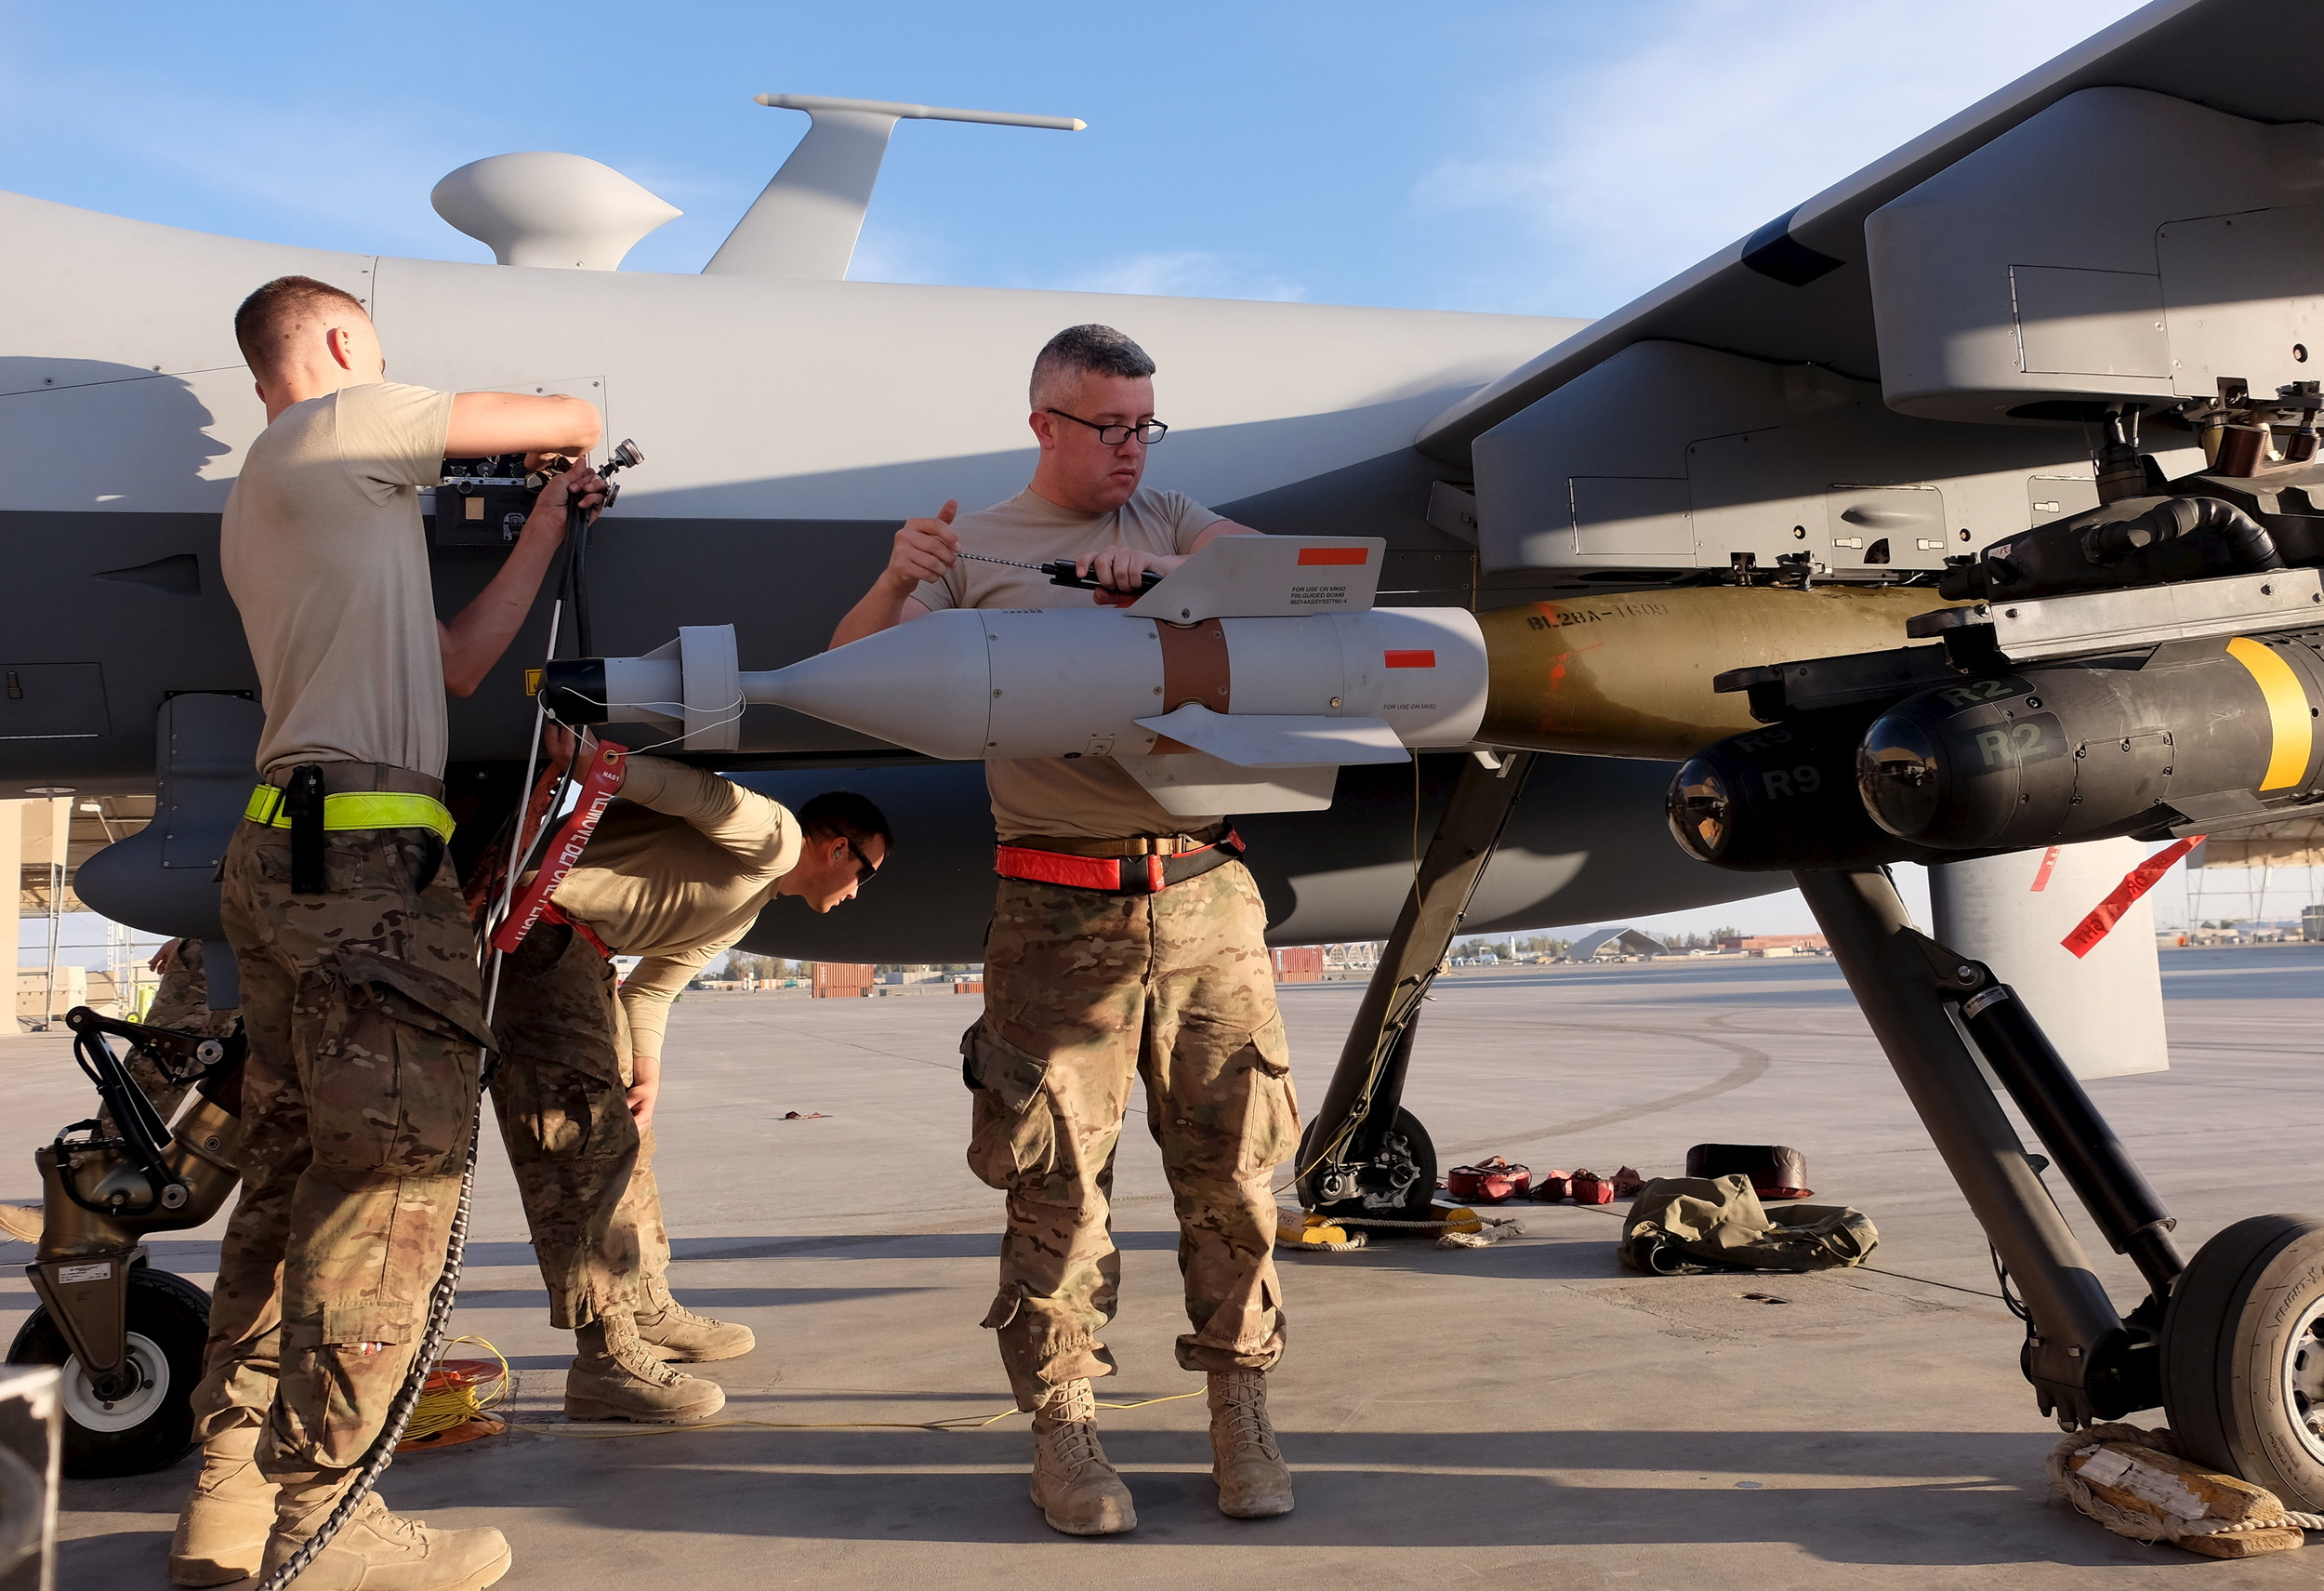 This company can 'hack' and completely take over enemy drones for the US military